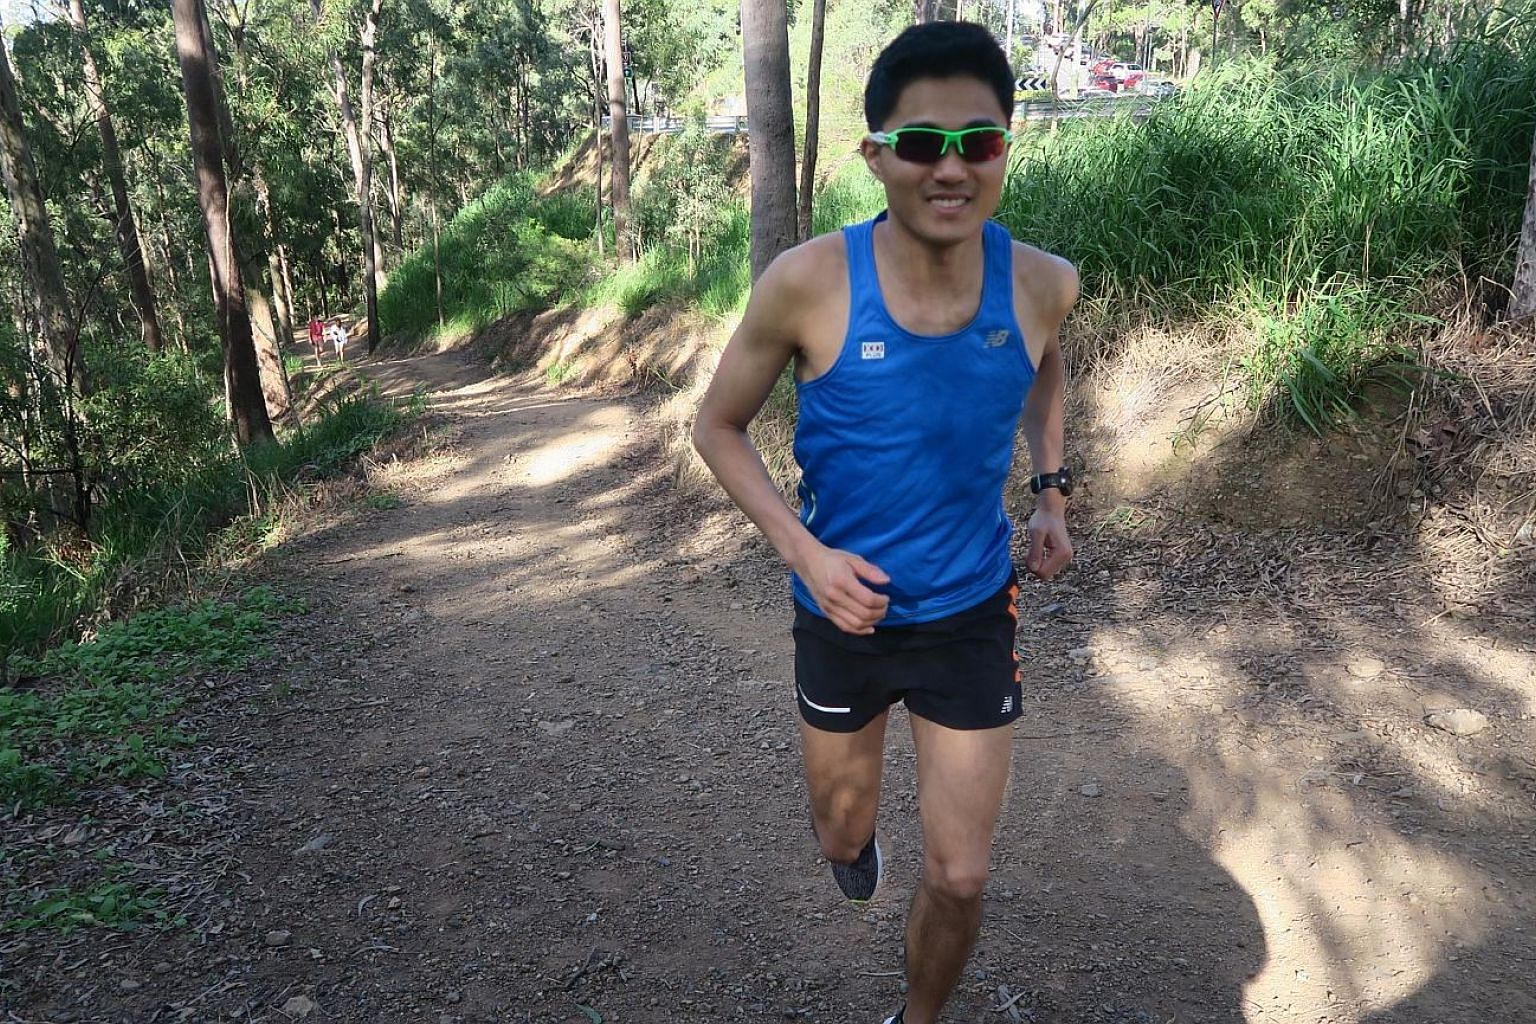 Mok Ying Ren incorporated hill training into his routine while in Brisbane, Australia. Train wisely to reap great benefits from such arduous workouts, he advises.